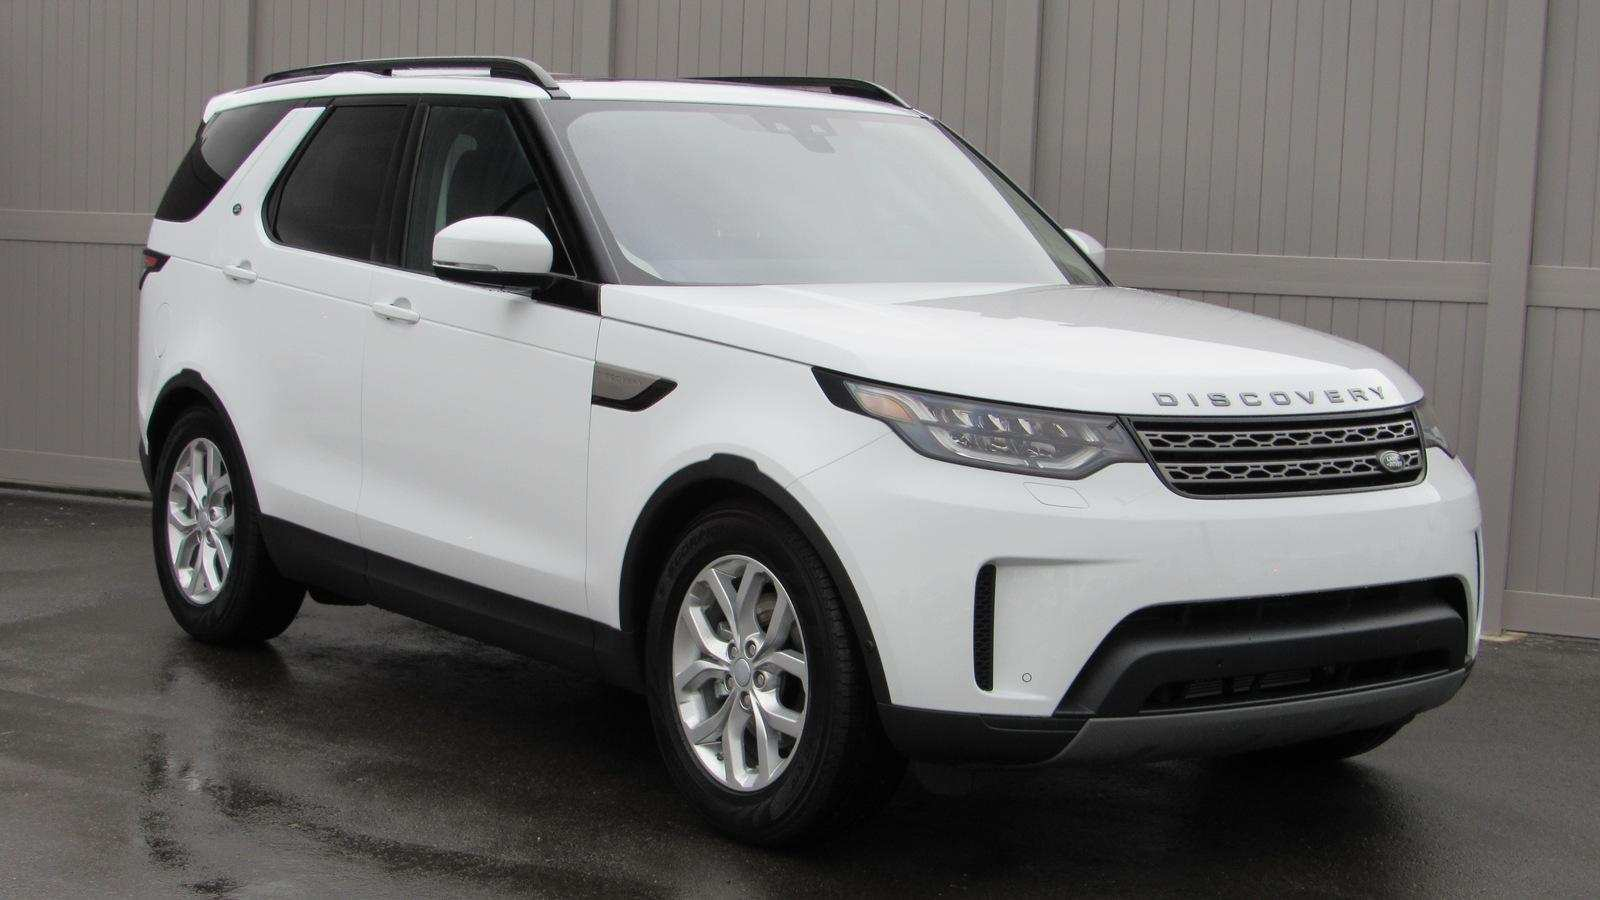 22 New 2019 Land Rover Discovery Images